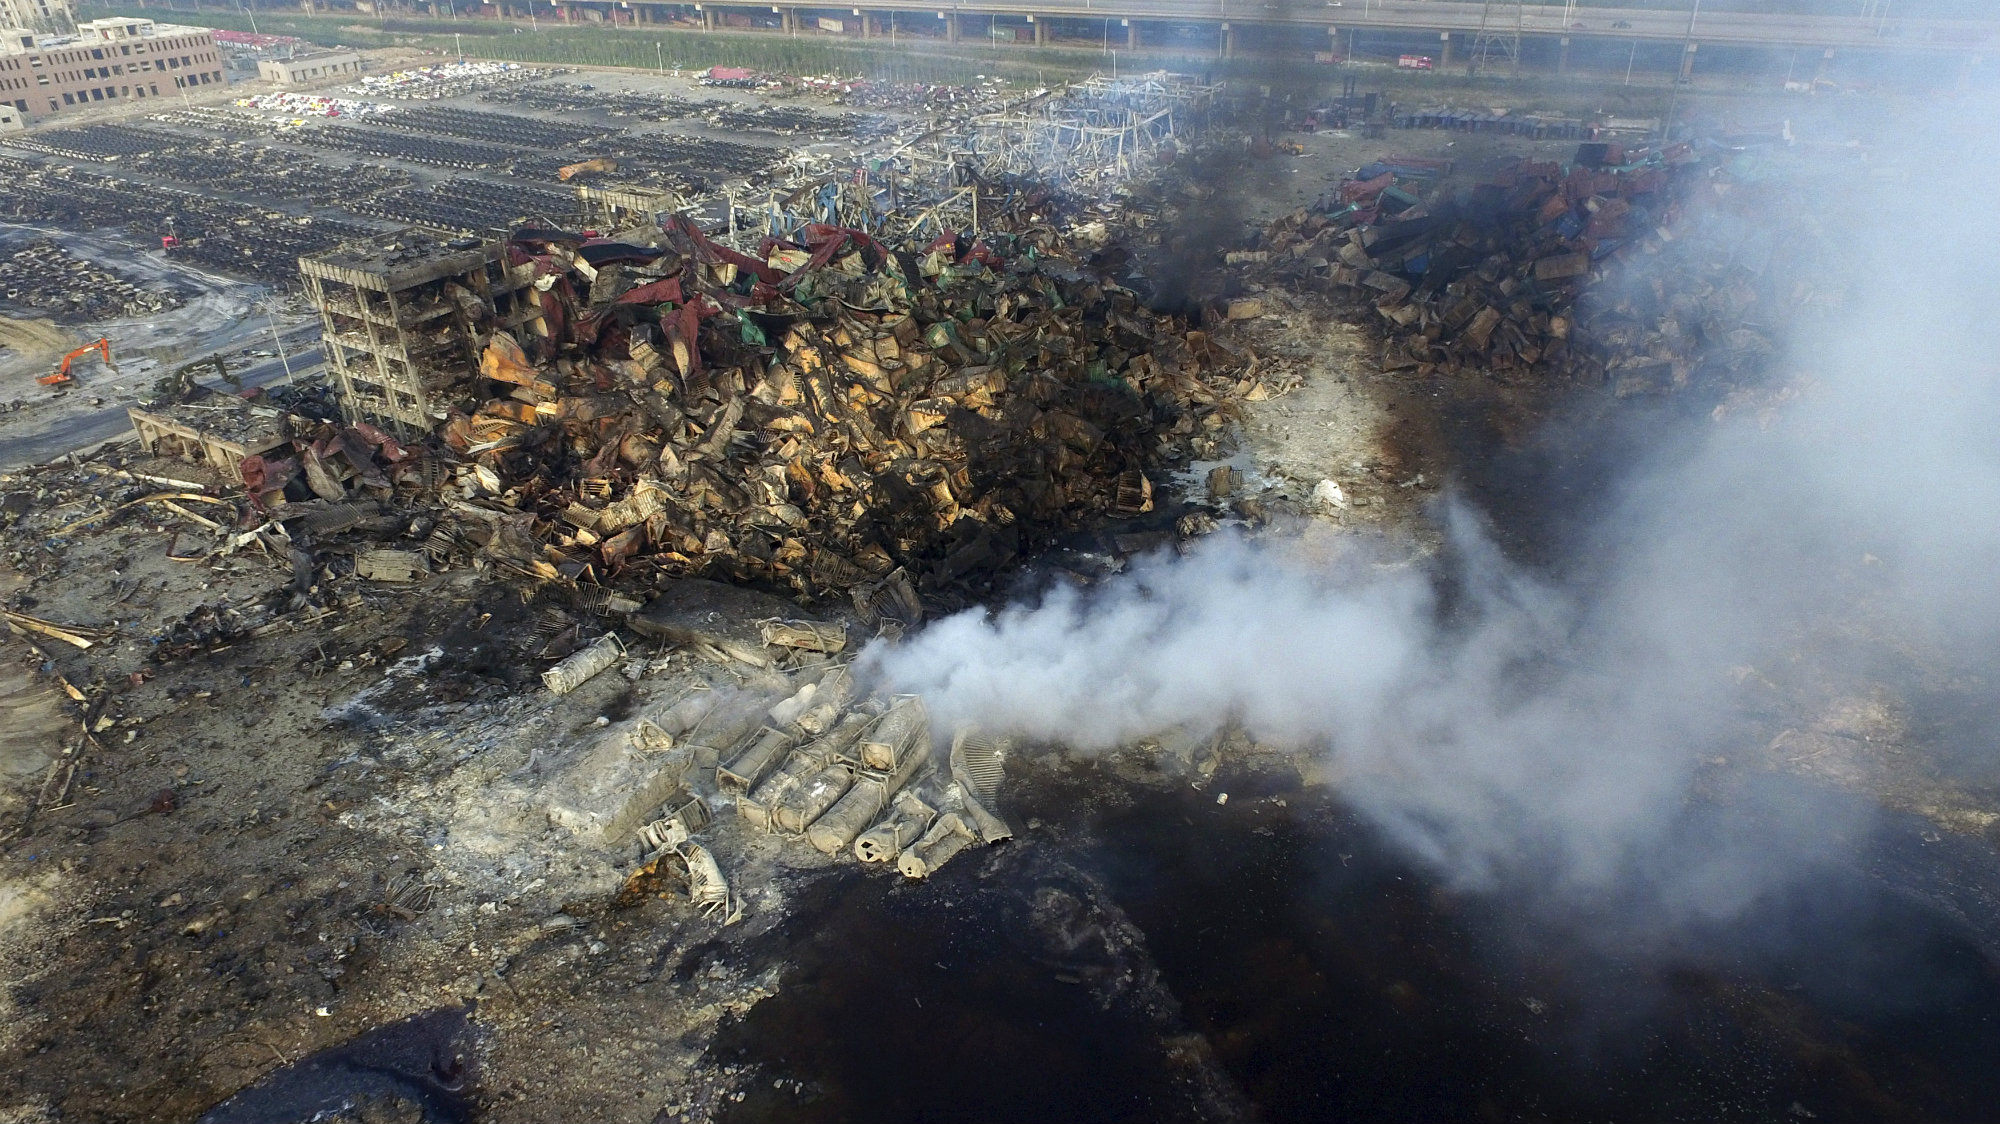 All about sodium cyanide the extremely toxic chemical found in all about sodium cyanide the extremely toxic chemical found in vast quantities at the tianjin explosion site quartz biocorpaavc Image collections